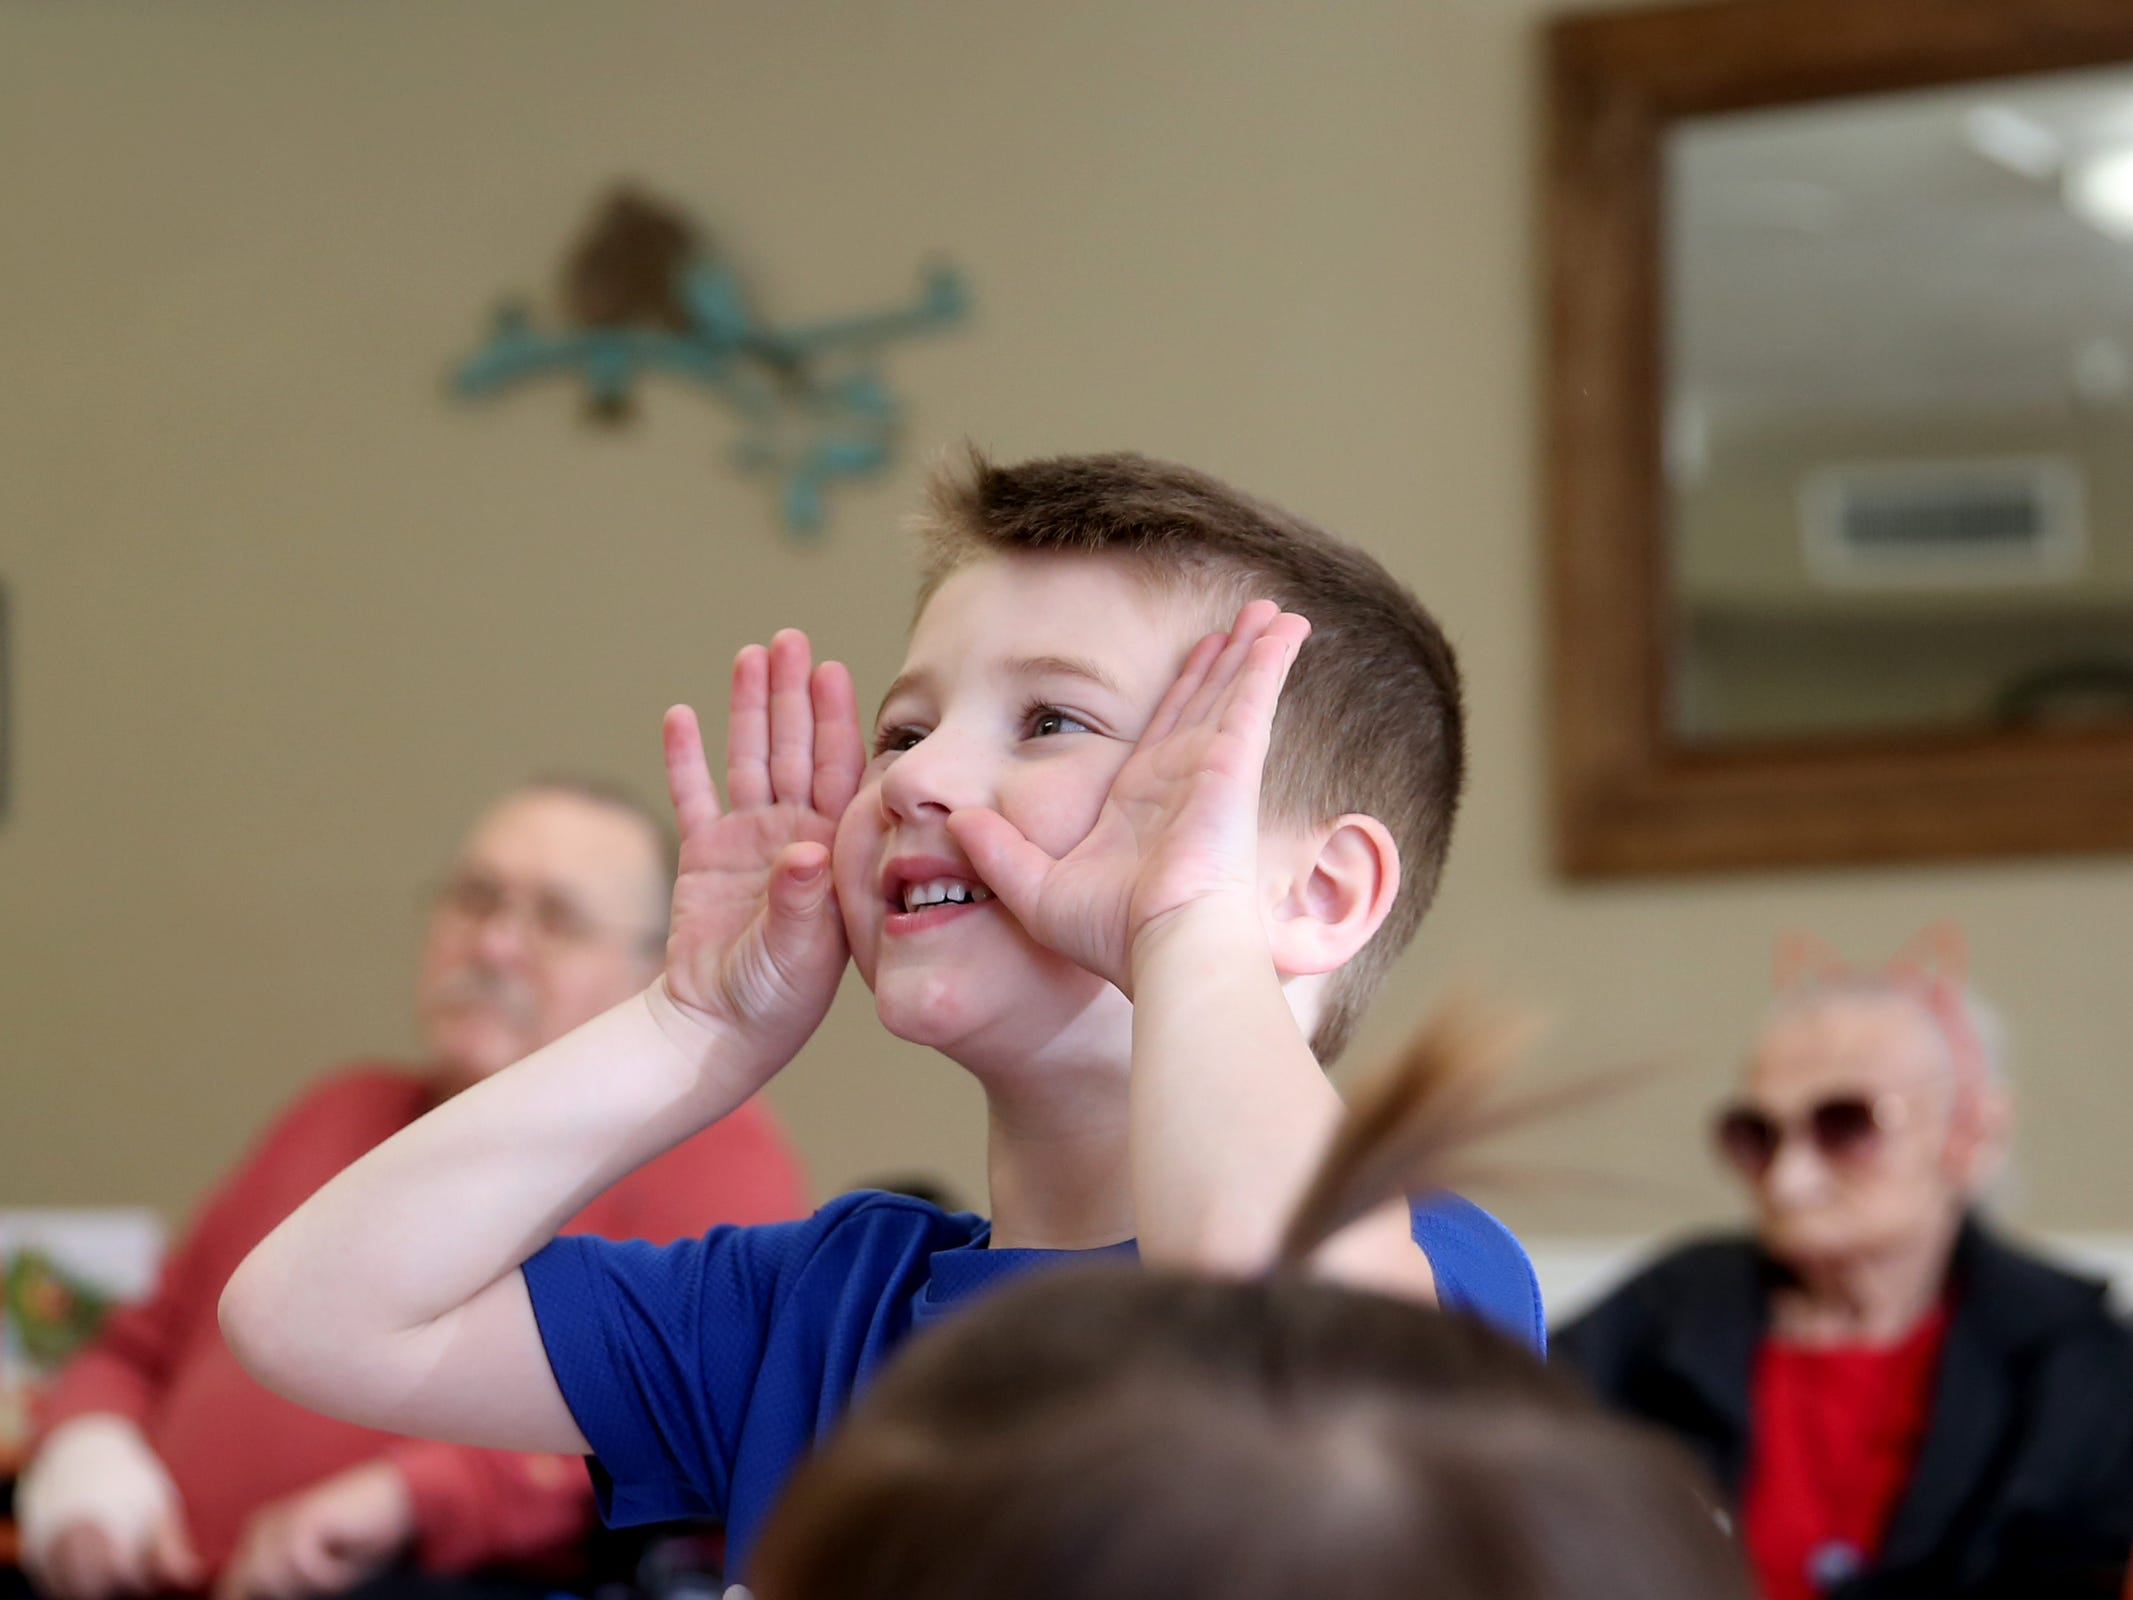 "Hank Jacobs, 5, sings along to a song during a visit by the Friendship Brigade, a group that focuses on intergenerational programming, at Avamere Transitional Care at Sunnyside in Salem on May 6, 2019. Once a week, ""Storytime at Sunnyside"" brings preschoolers to the seniors for reading, singing, dancing and other playtime activities."